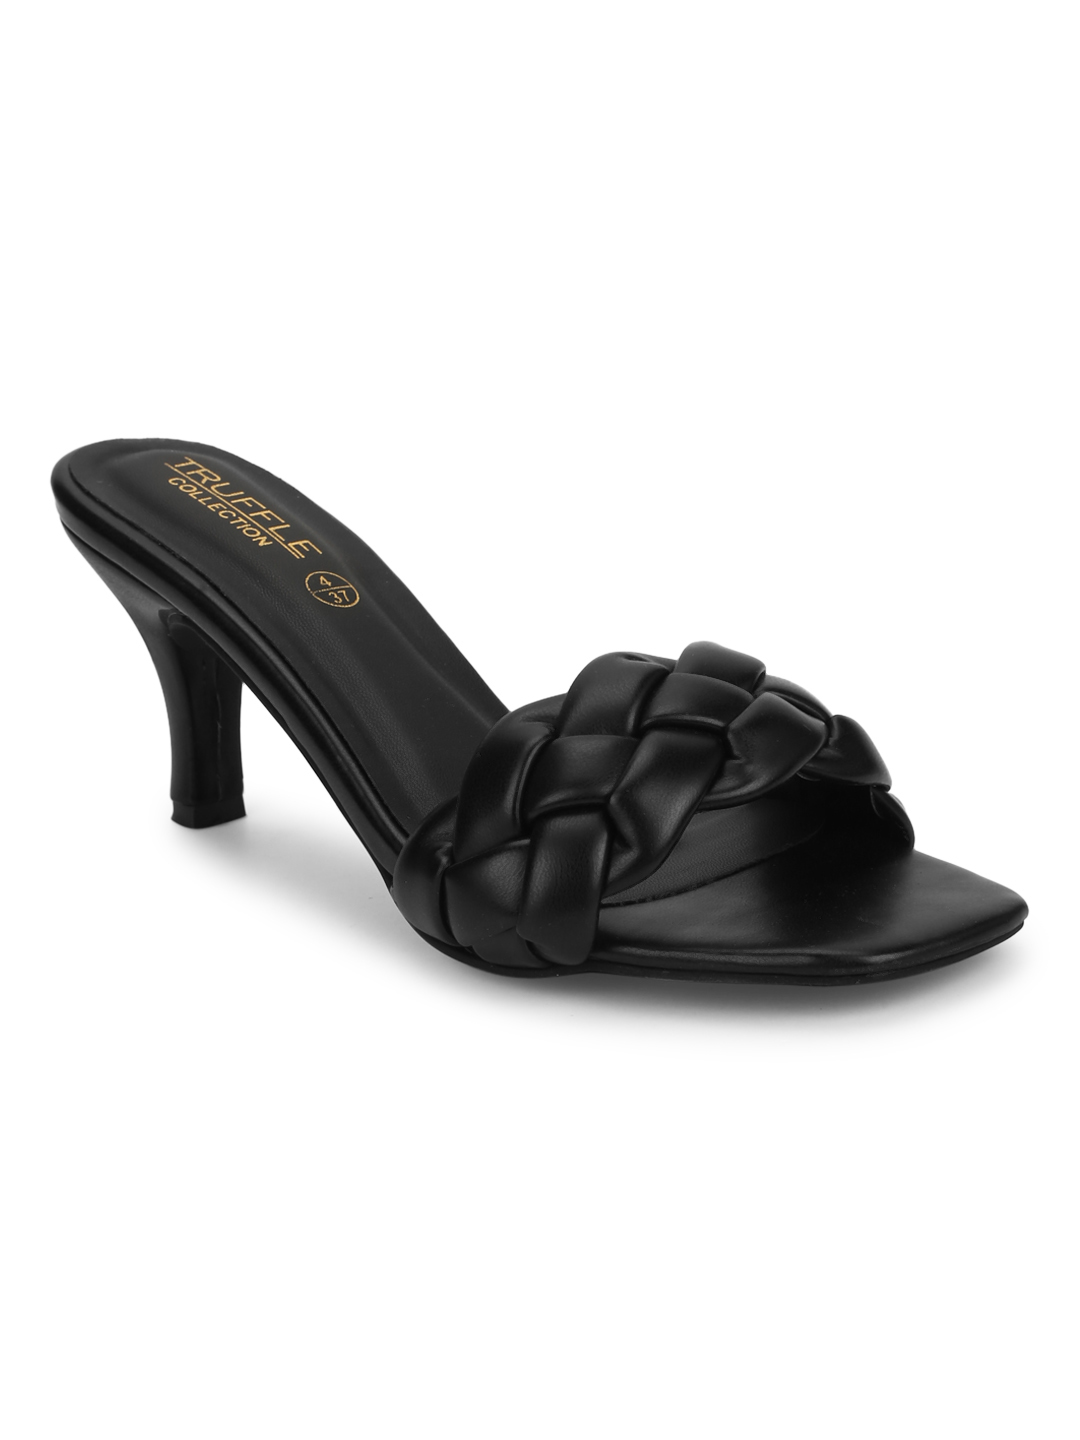 Truffle Collection | Truffle Collection Black PU Braided Kitten Heels